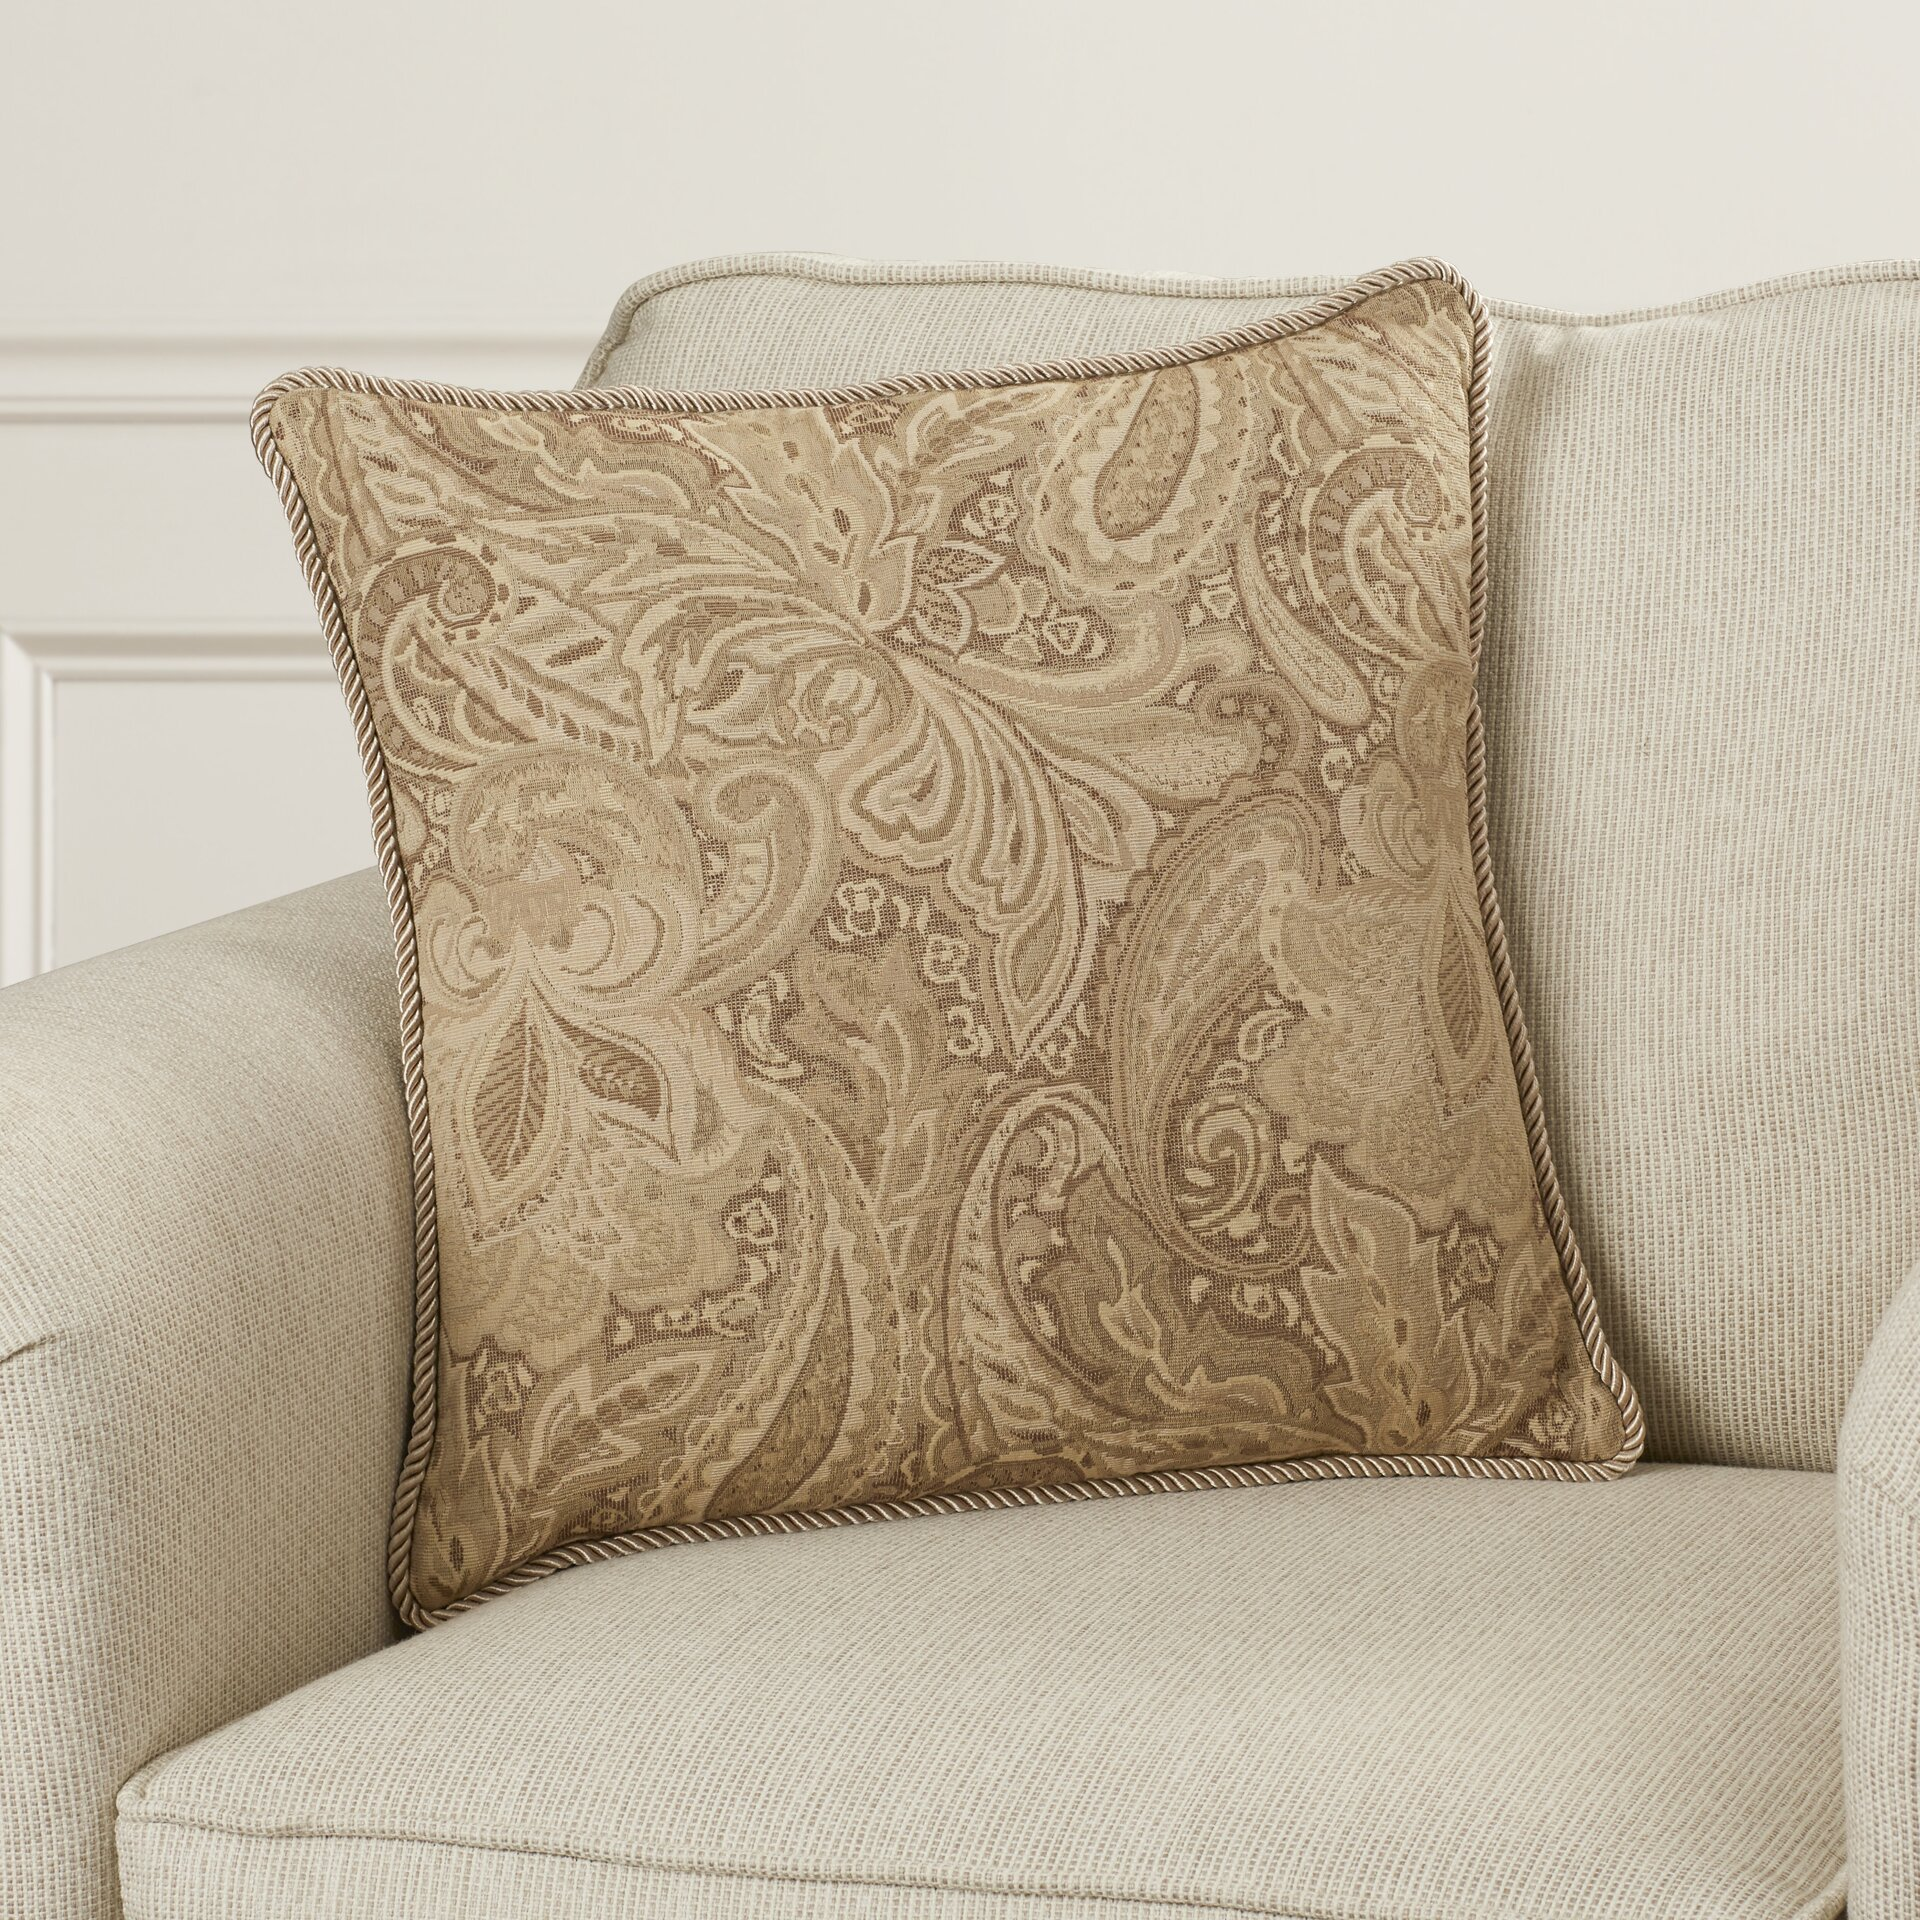 Jacquard Throw Pillows : Charlton Home Drayton Jacquard Paisley Throw Pillow & Reviews Wayfair